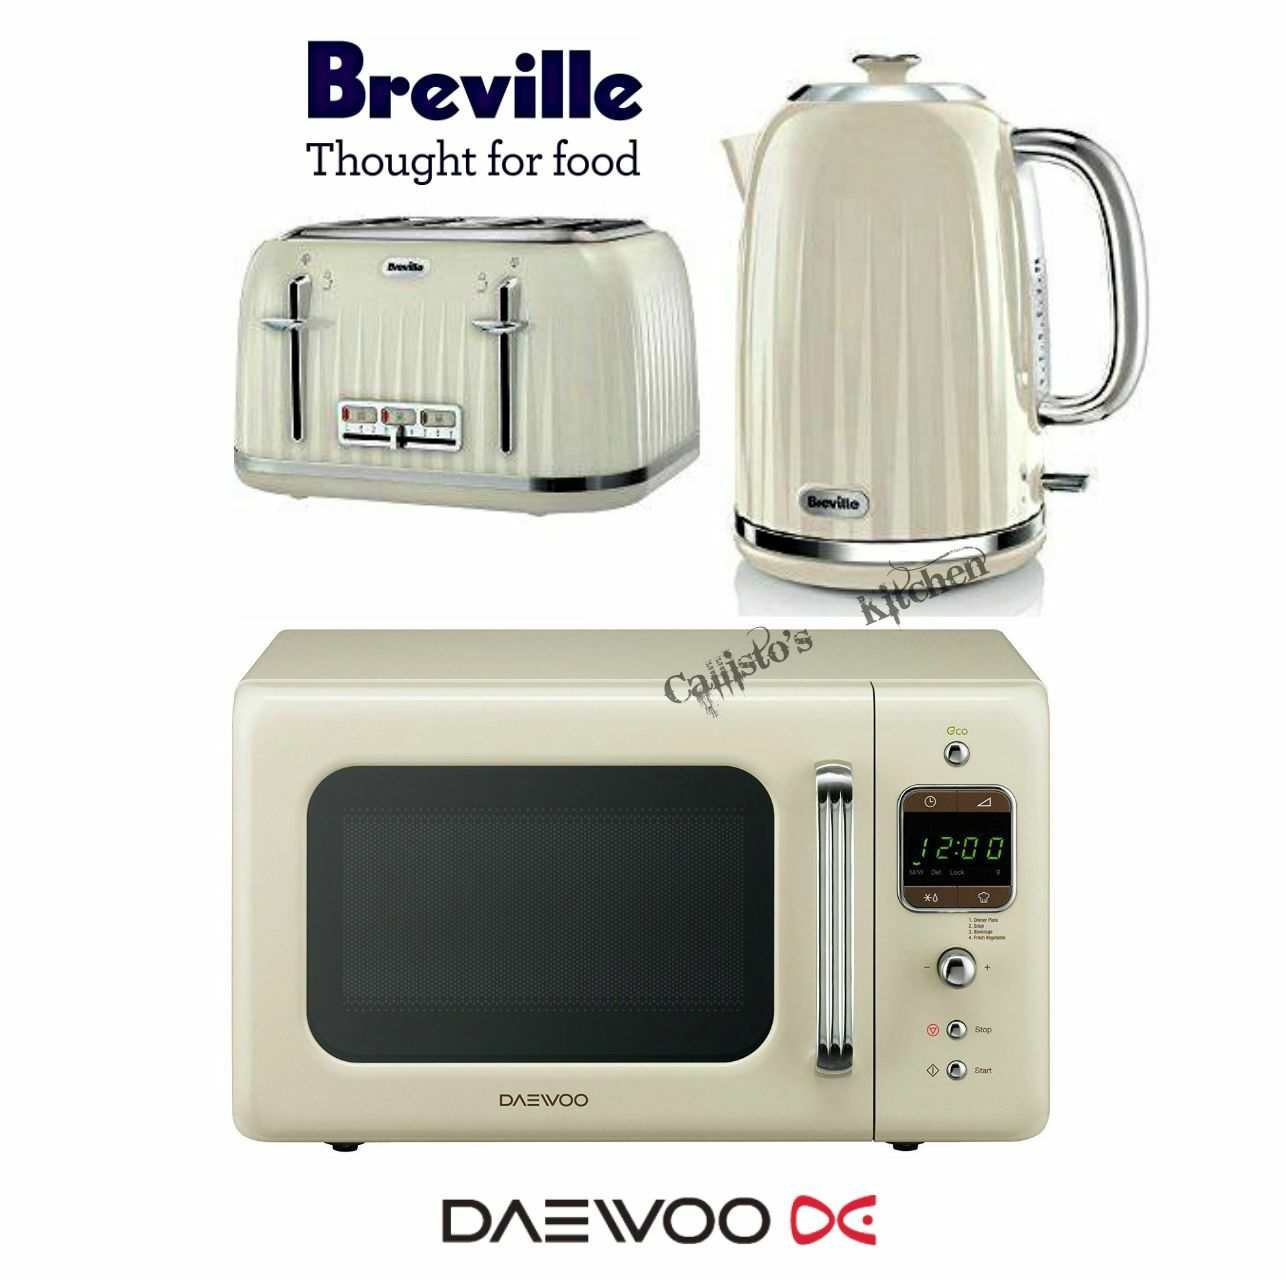 Breville impressions cream kettle and toaster set daewoo for Kitchen set kettle toaster microwave